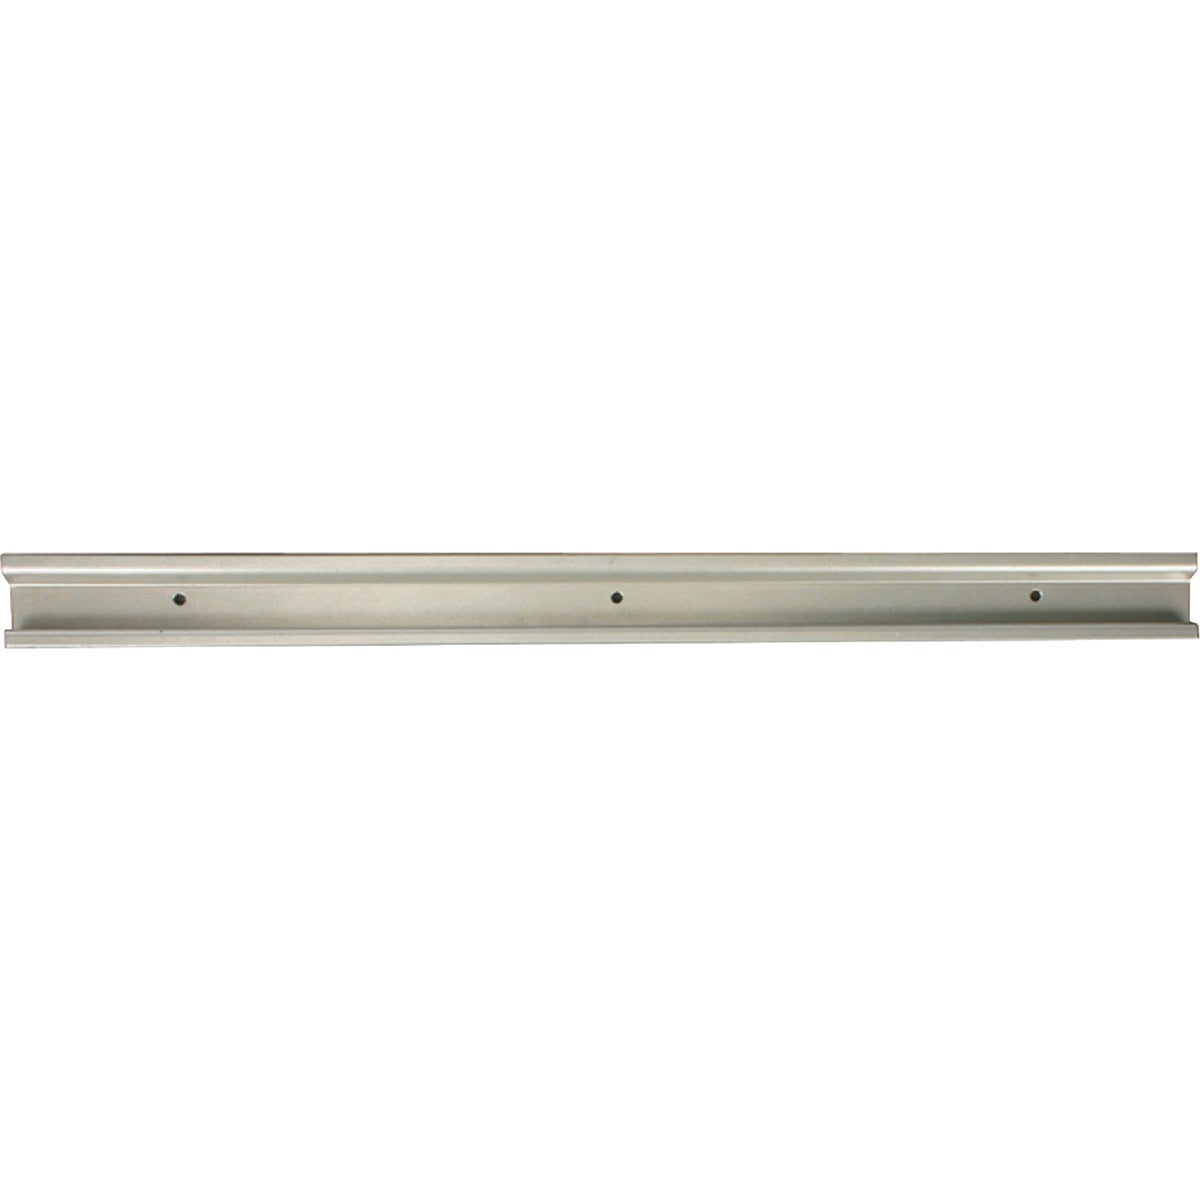 "TI 48"" STNDRD HANG RAIL"